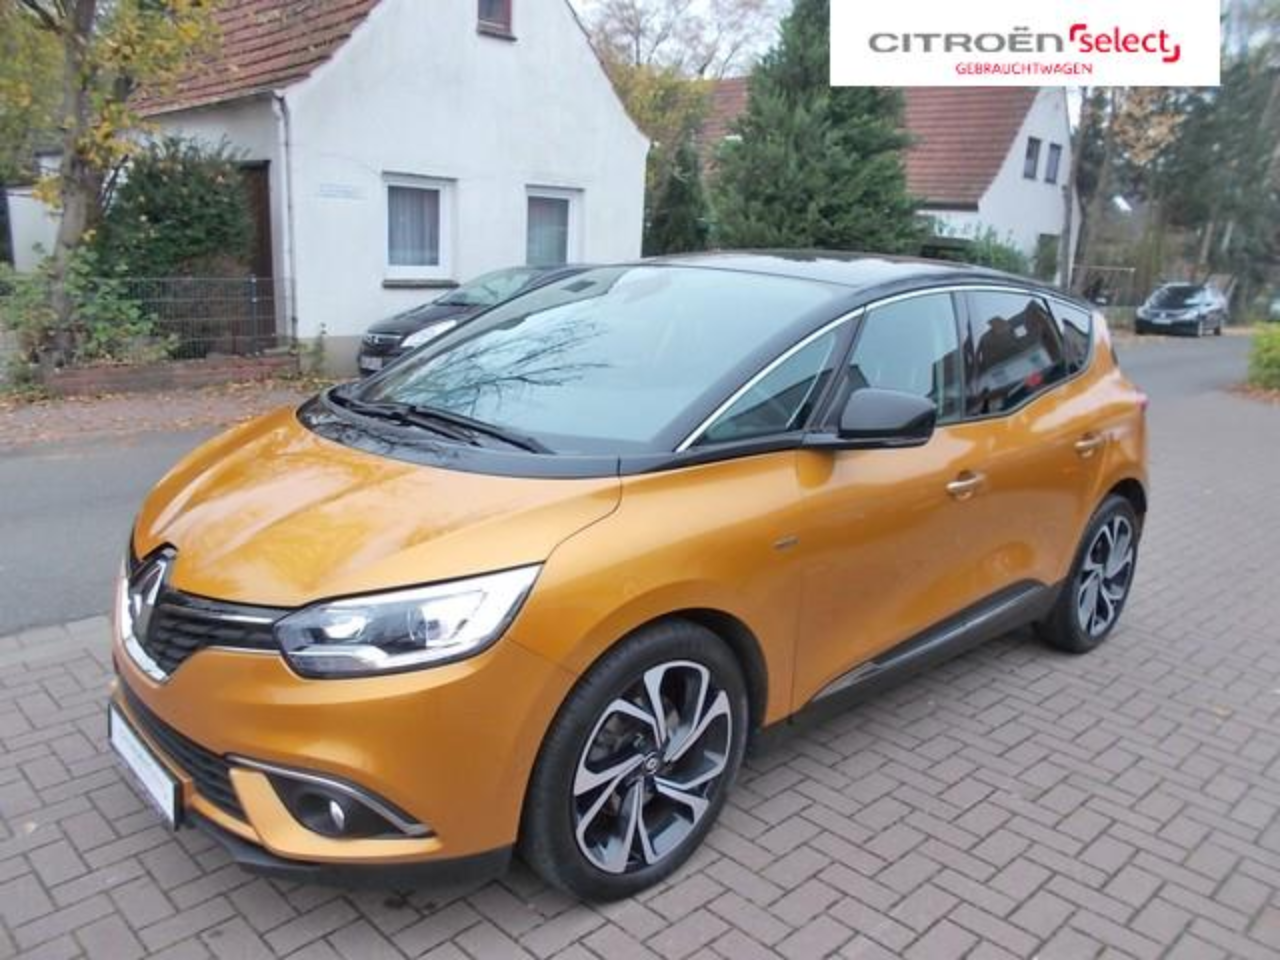 Renault Scenic 1.6 dCi 130 Energy BOSE-Edition